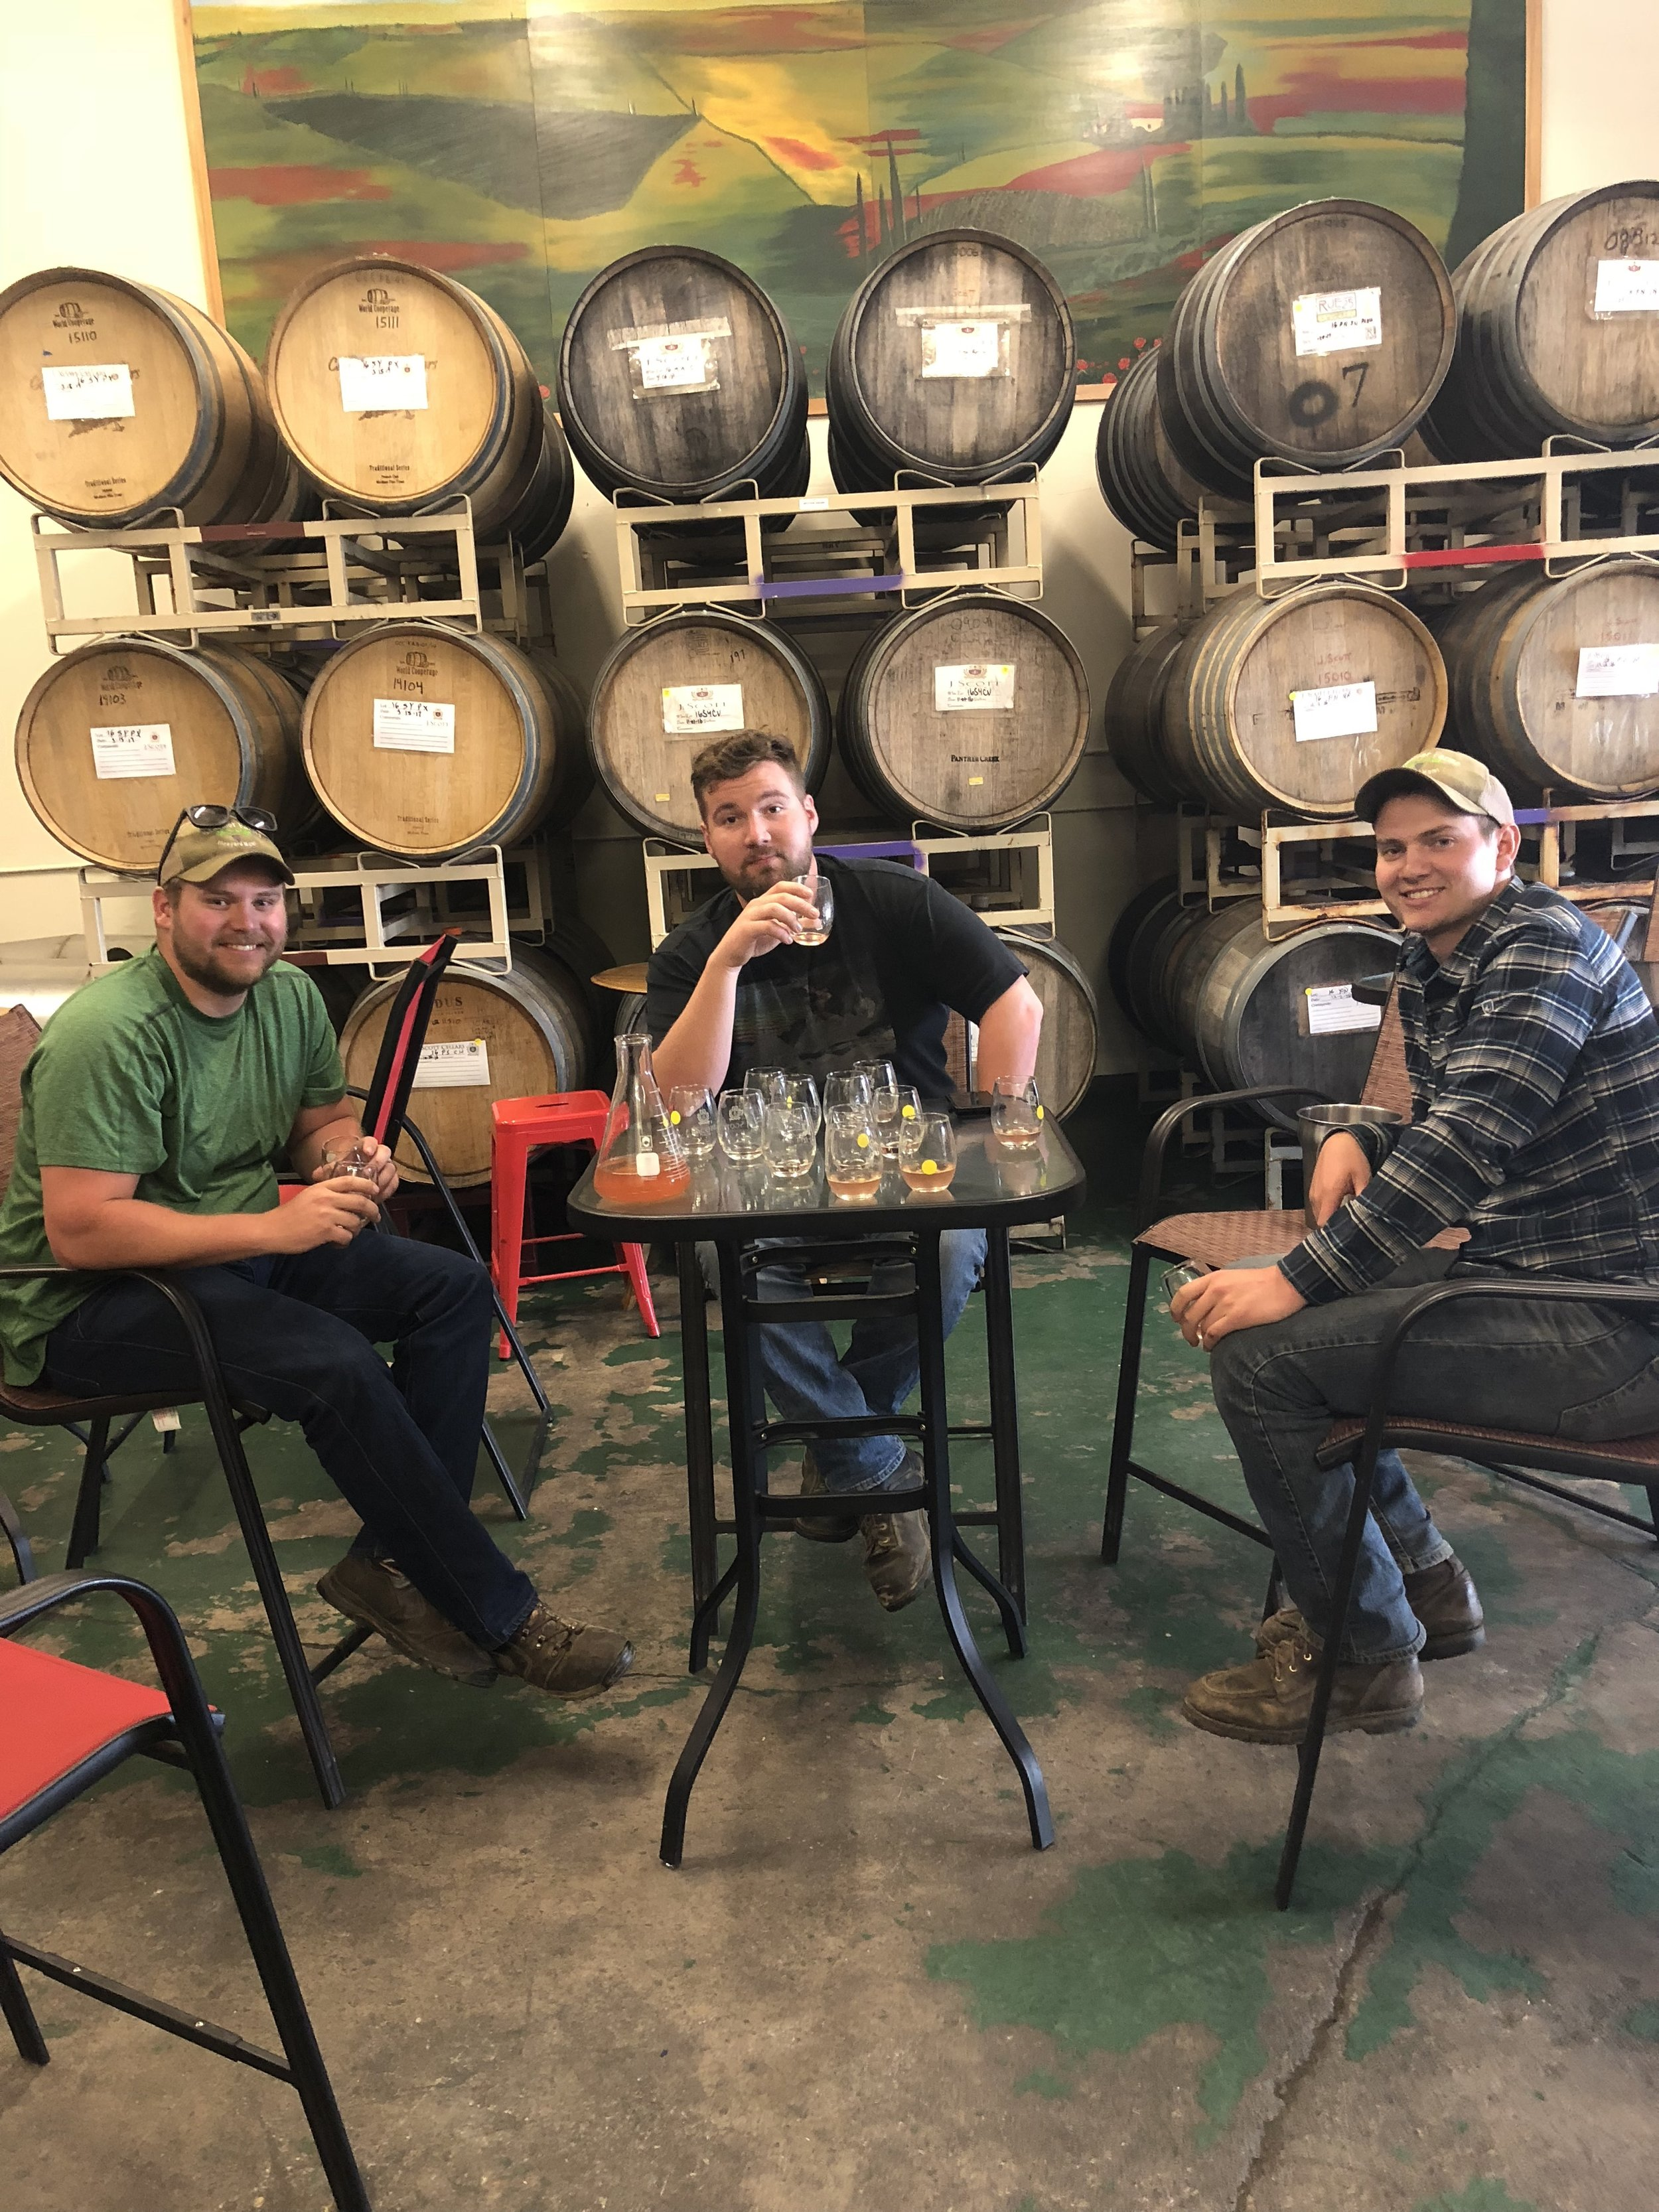 From left to right: Ben Kraemer, vineyard operations manager; Alex Kraemer, social media manager; Austin Kraemer, contract manager, sales manager.